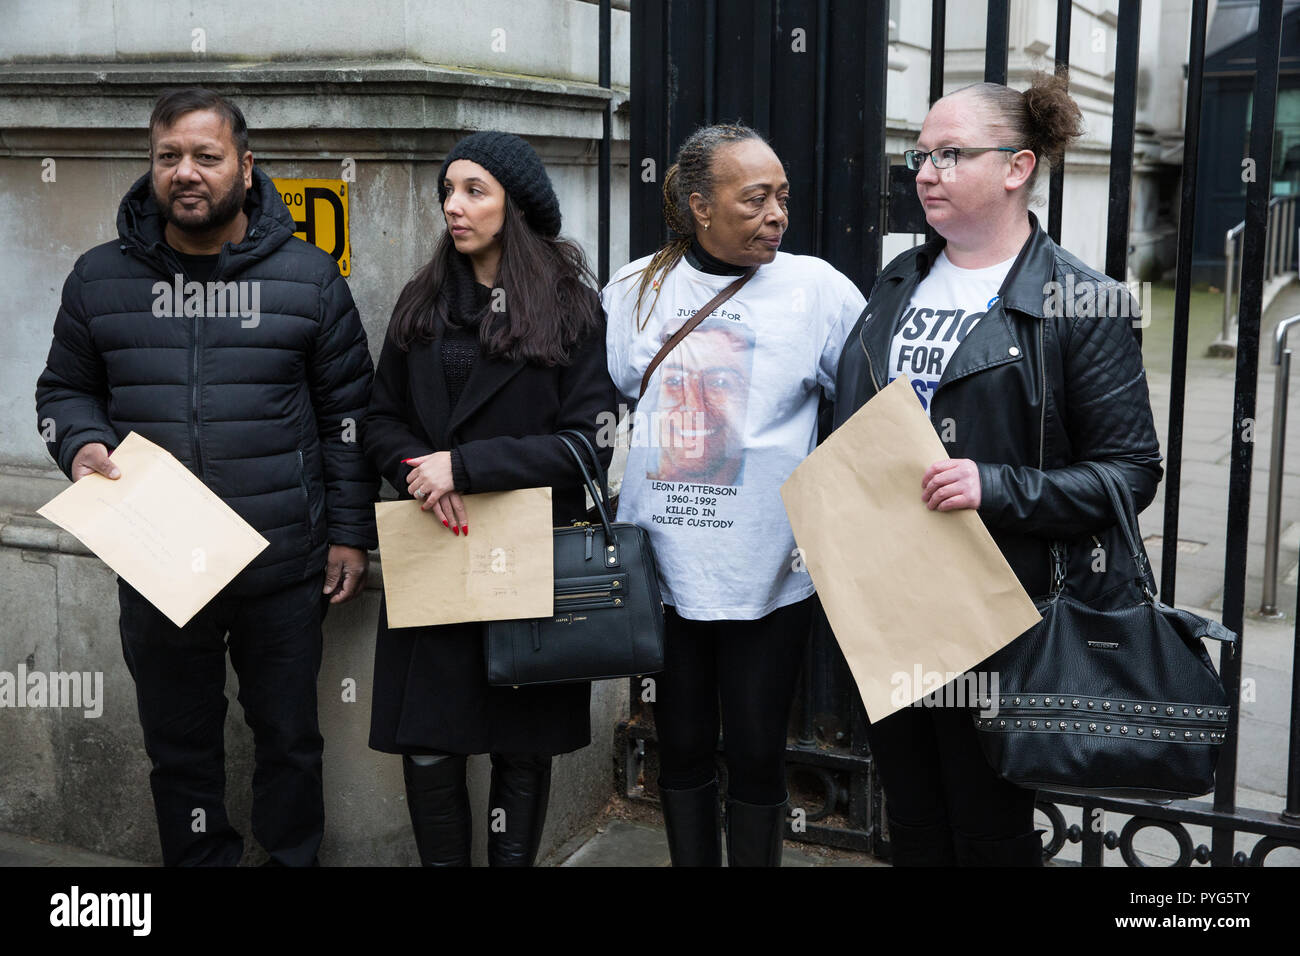 London, UK. 27th October, 2018. Campaigners from the United Families and Friends Campaign (UFFC) prepare to present letters at Downing Street following the 20th annual procession in remembrance of family members and friends who died in police custody, prison, immigration detention or secure psychiatric hospitals. UFFC was set up in 1997 by families who had lost loved ones at the hands of the state with the intention of challenging systemic injustice. Credit: Mark Kerrison/Alamy Live News - Stock Image